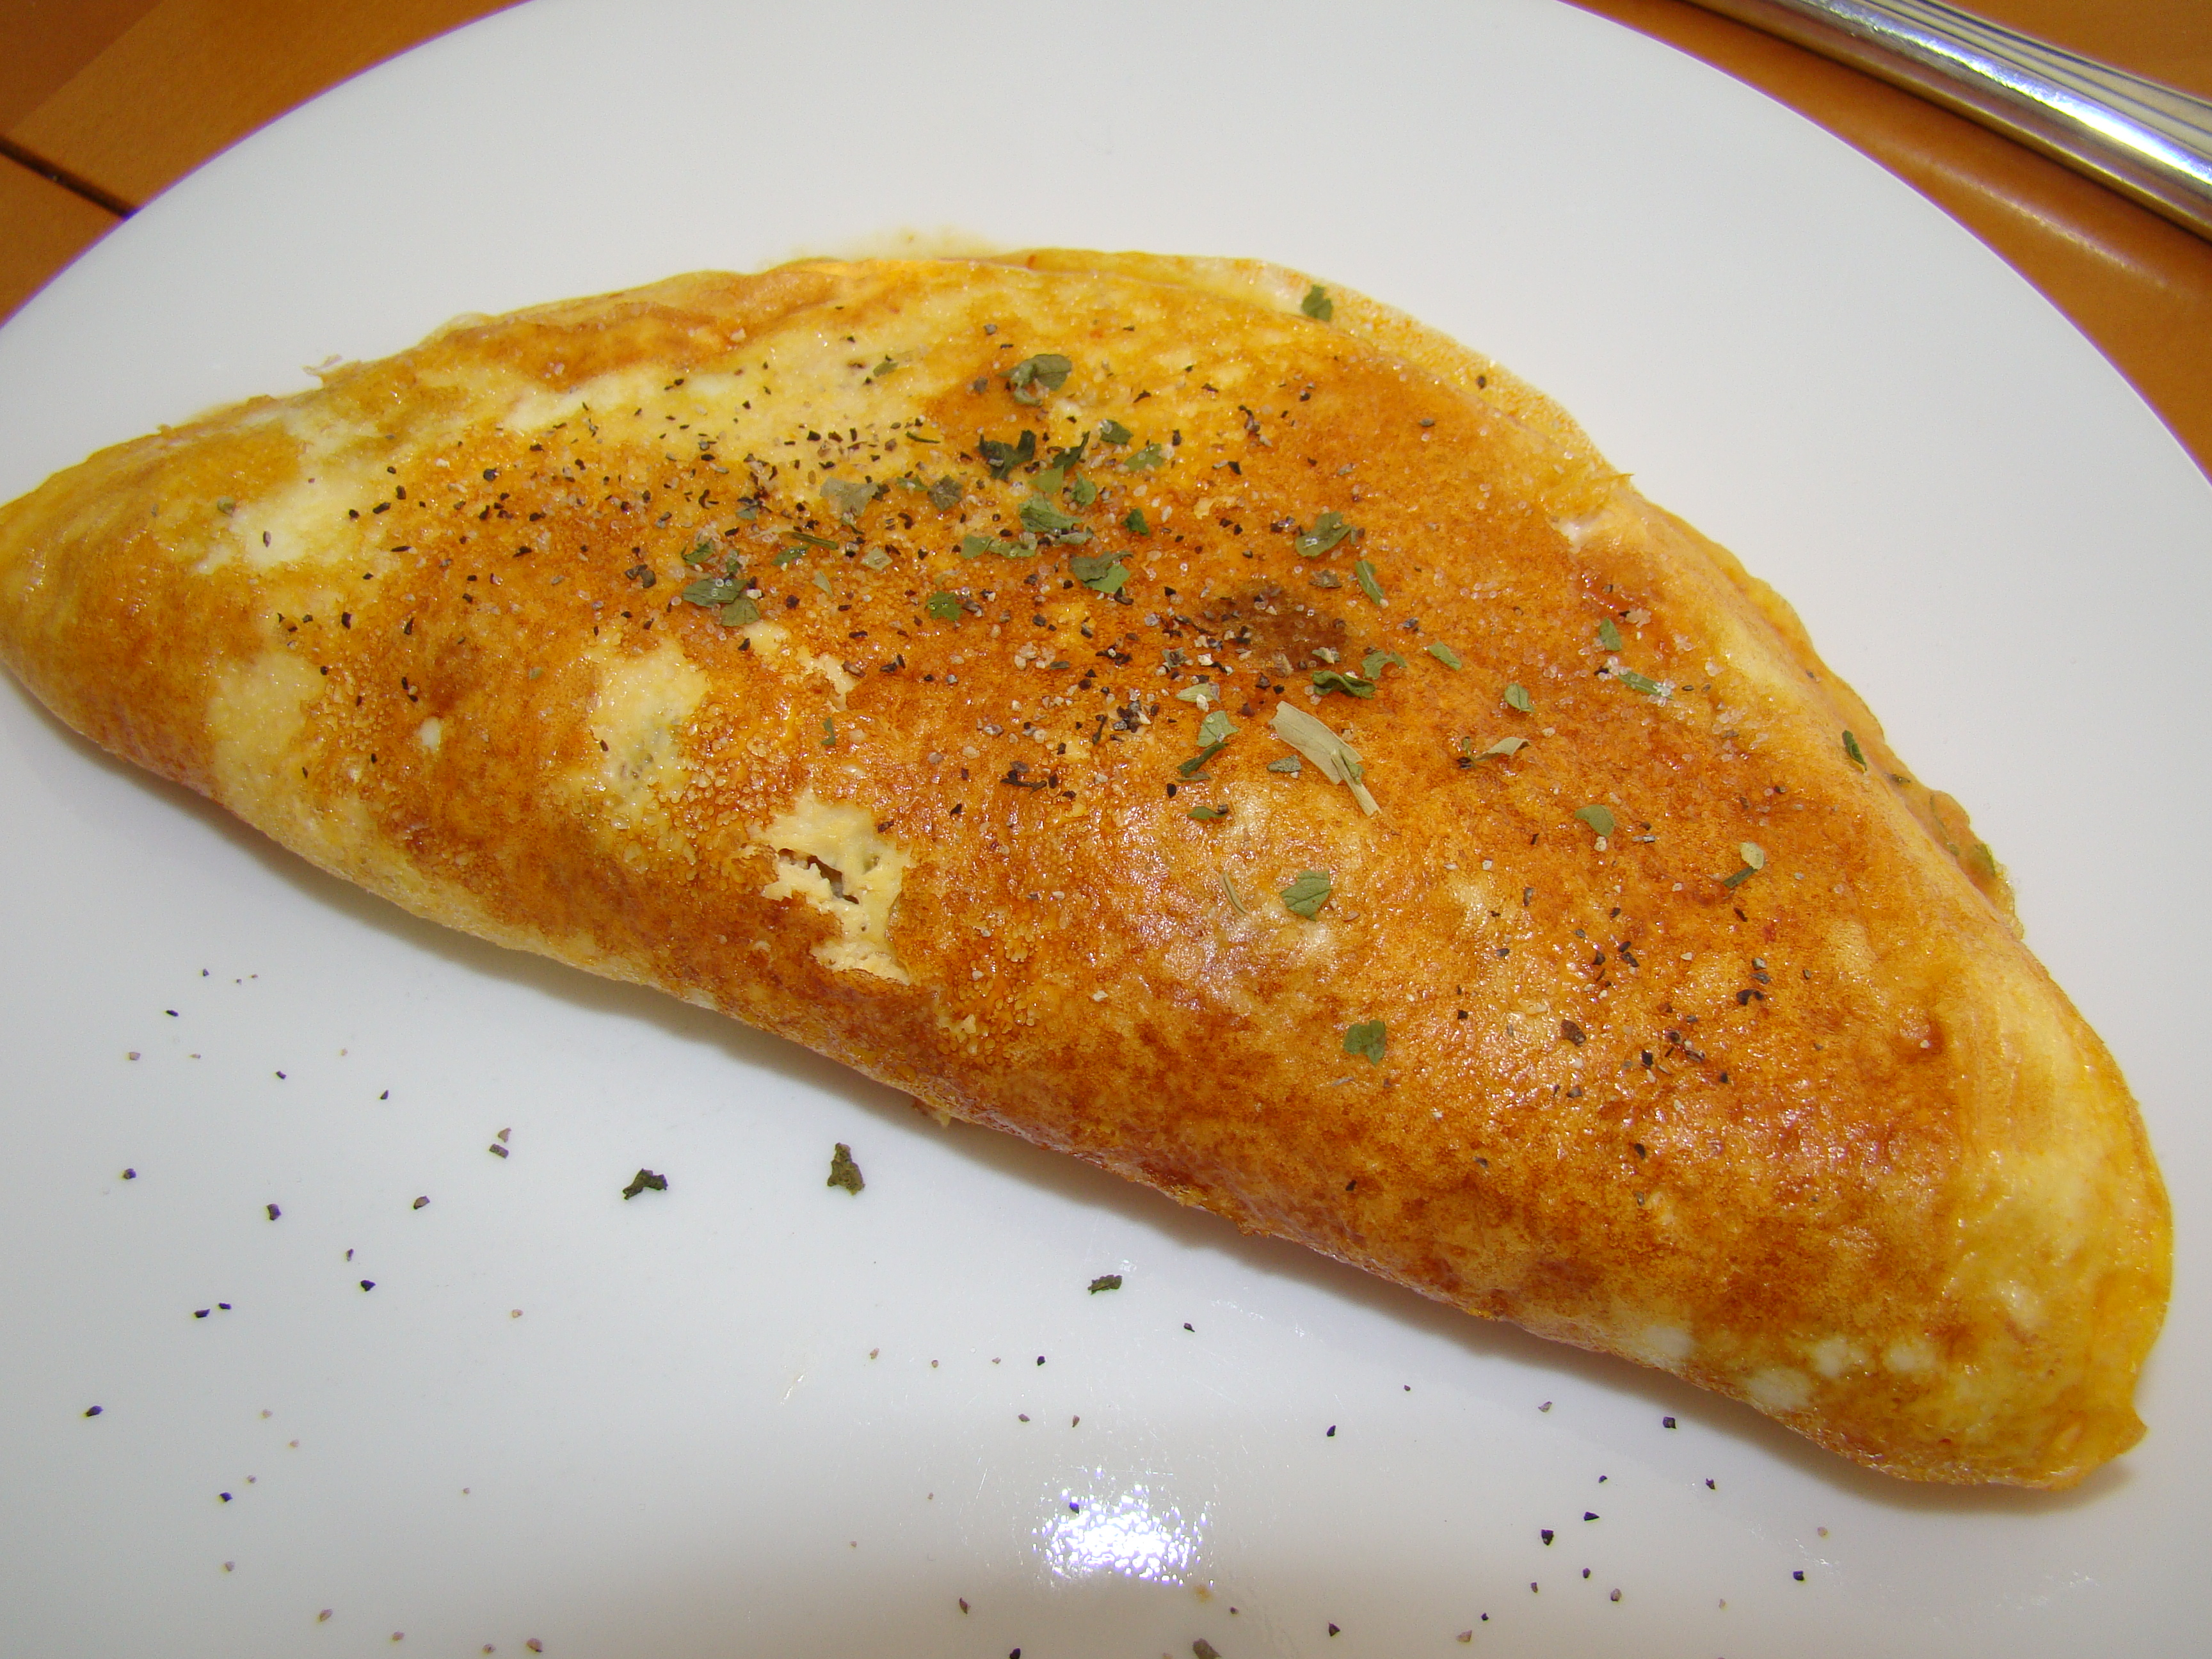 File:Omelet_With_Fixings.jpg